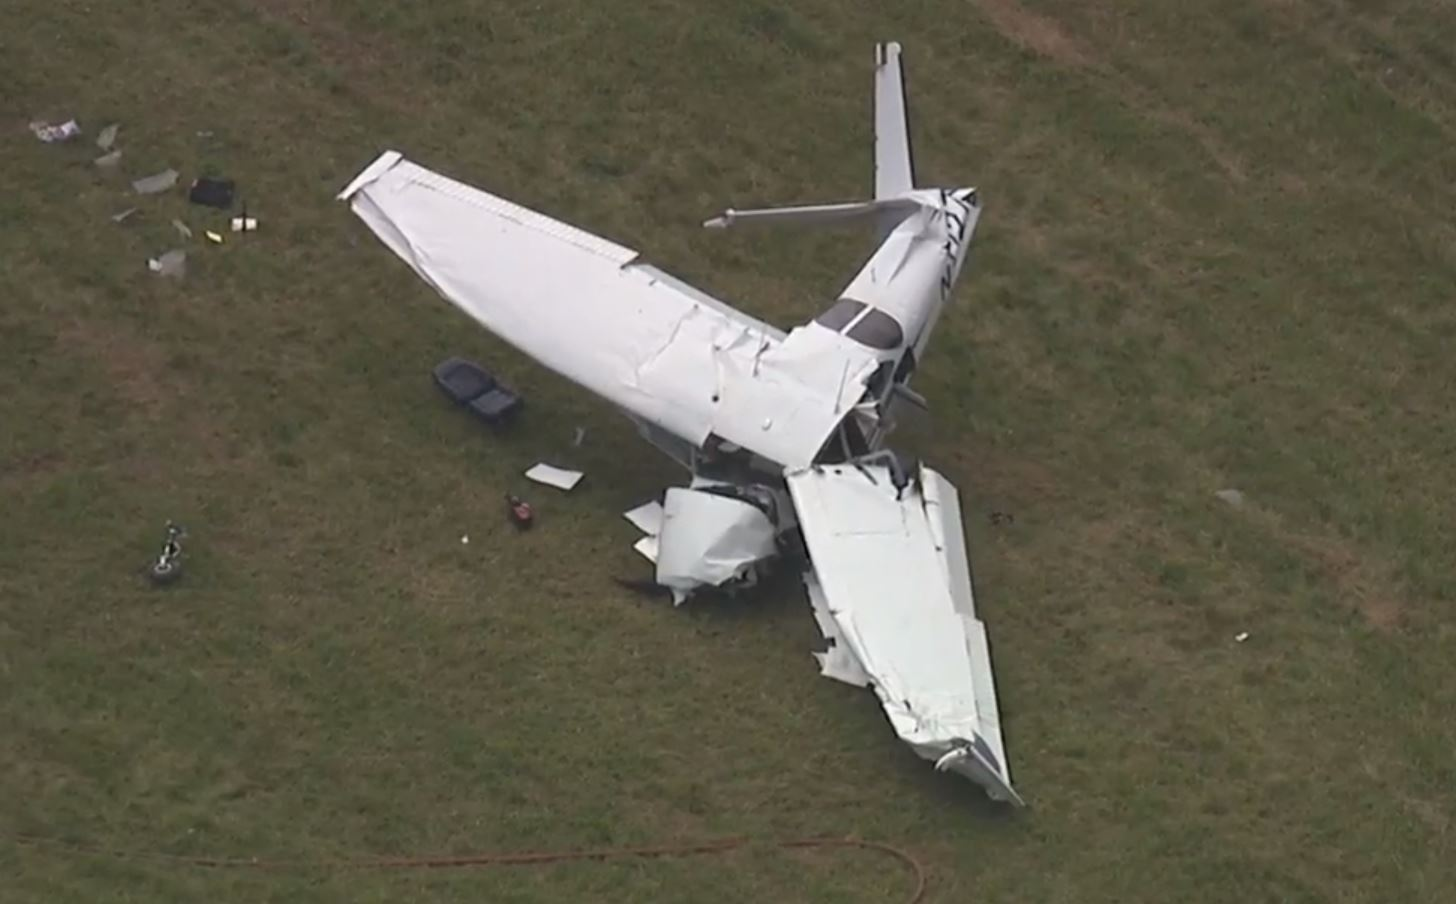 One dead when single-engine plane crashes